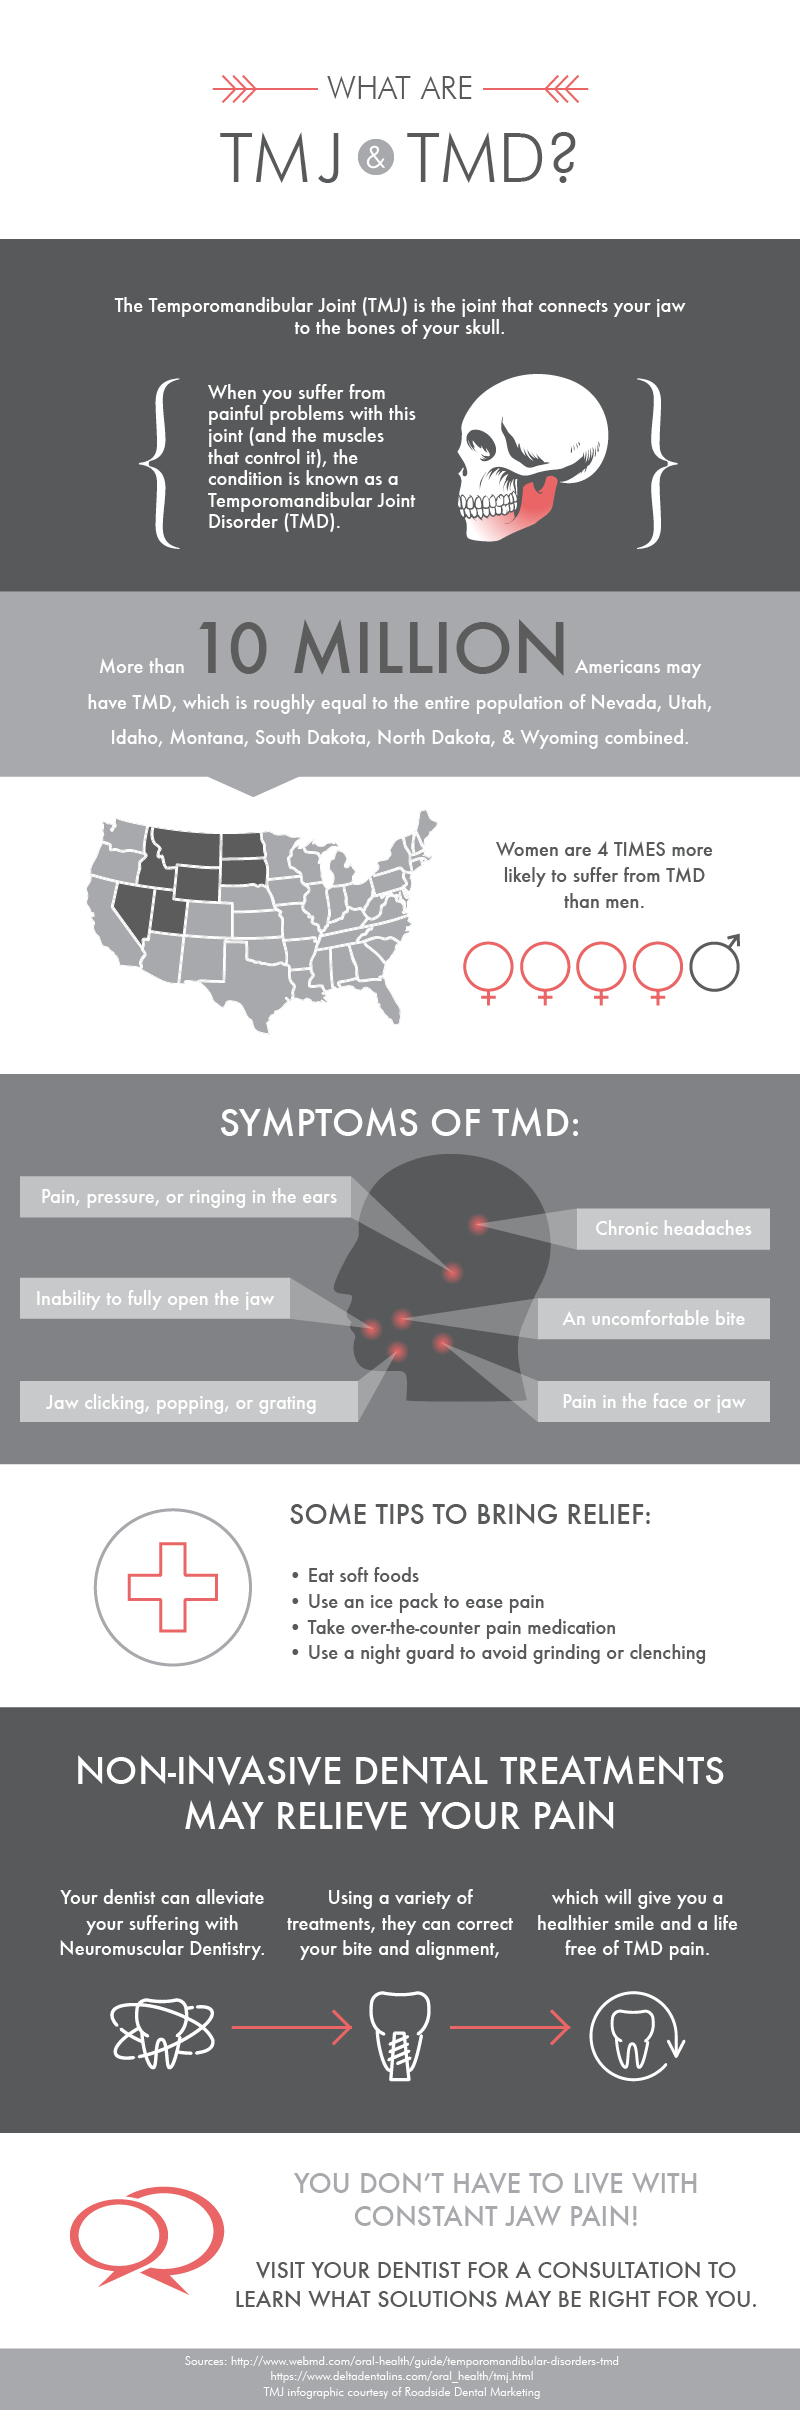 15111 Blog Infographic - TMJ Awareness